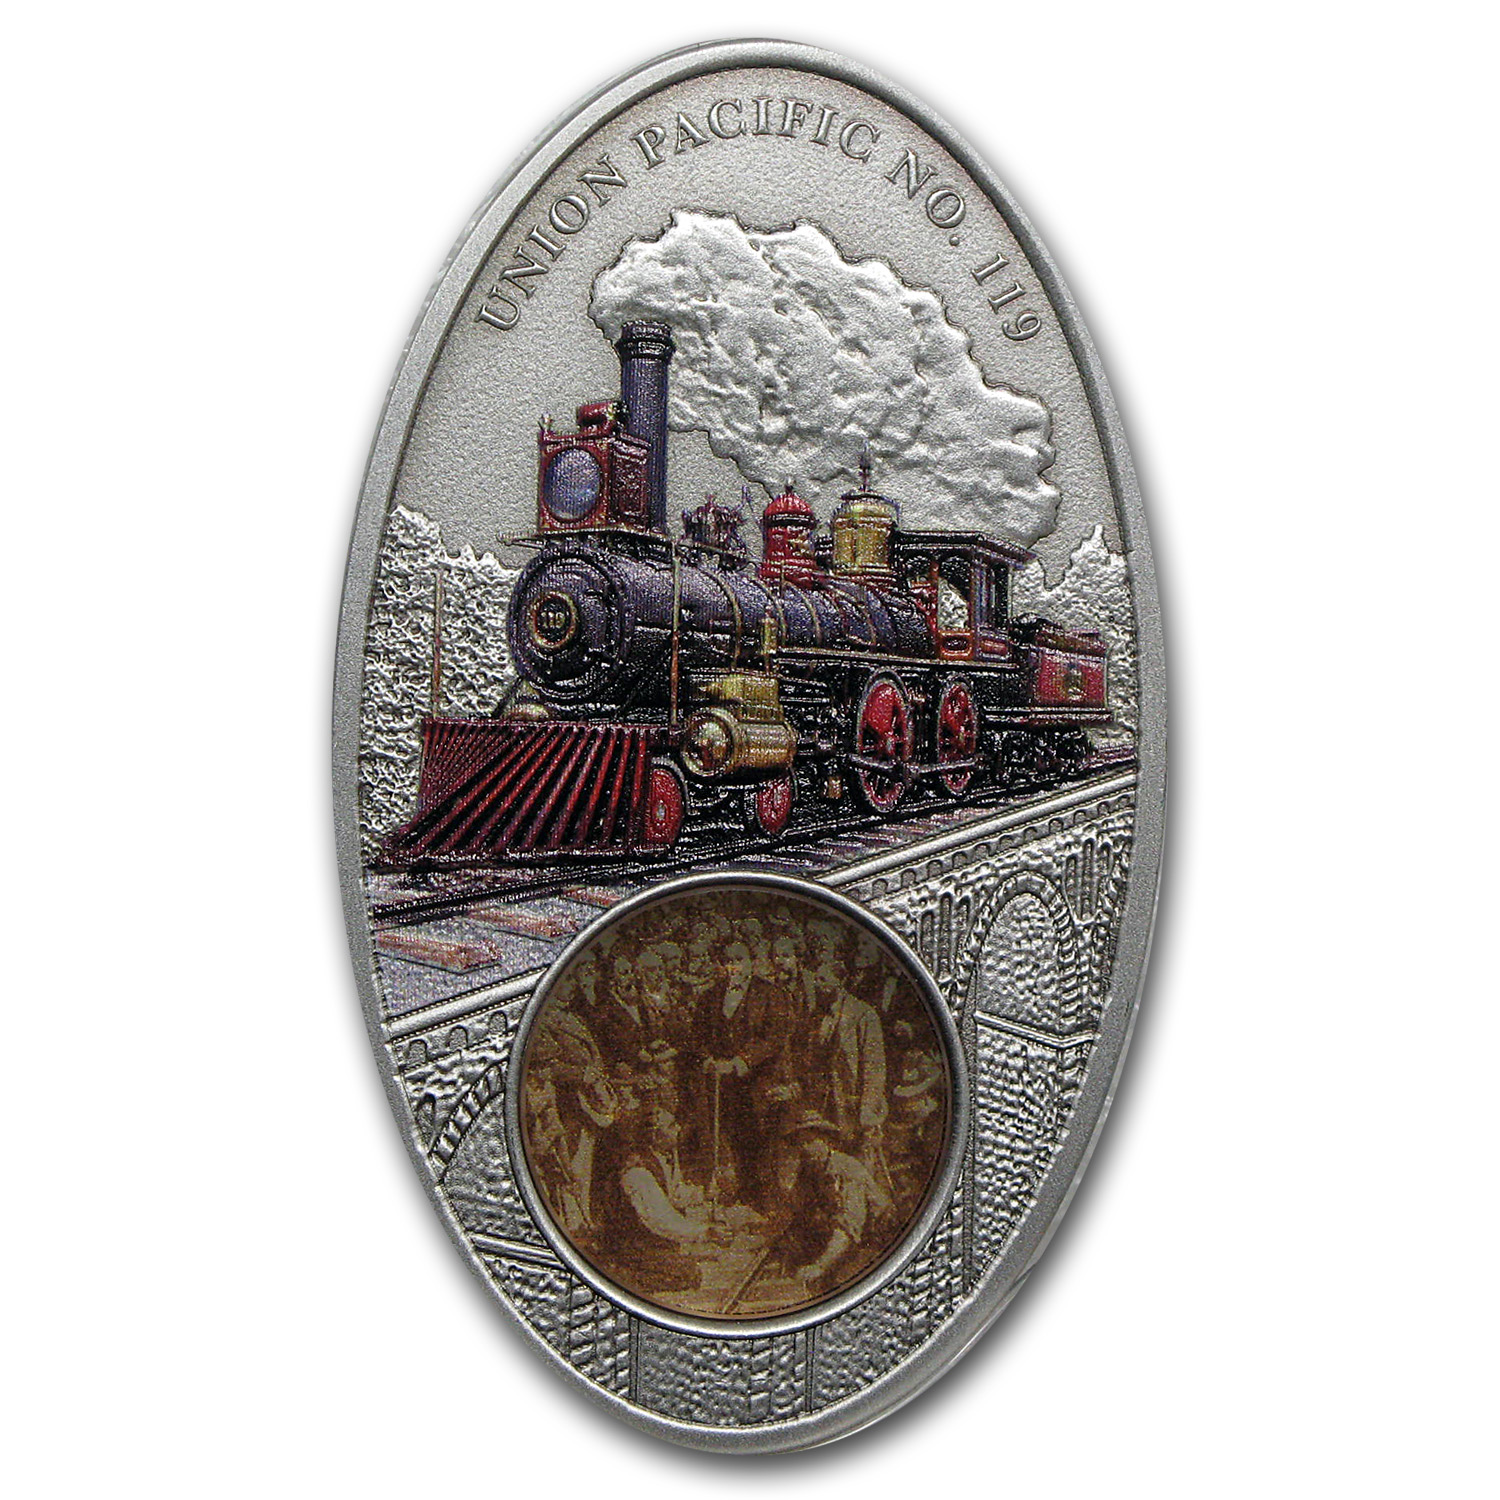 2013 Fiji Silver Famous Steam Locomotives Union Pacific No. 119